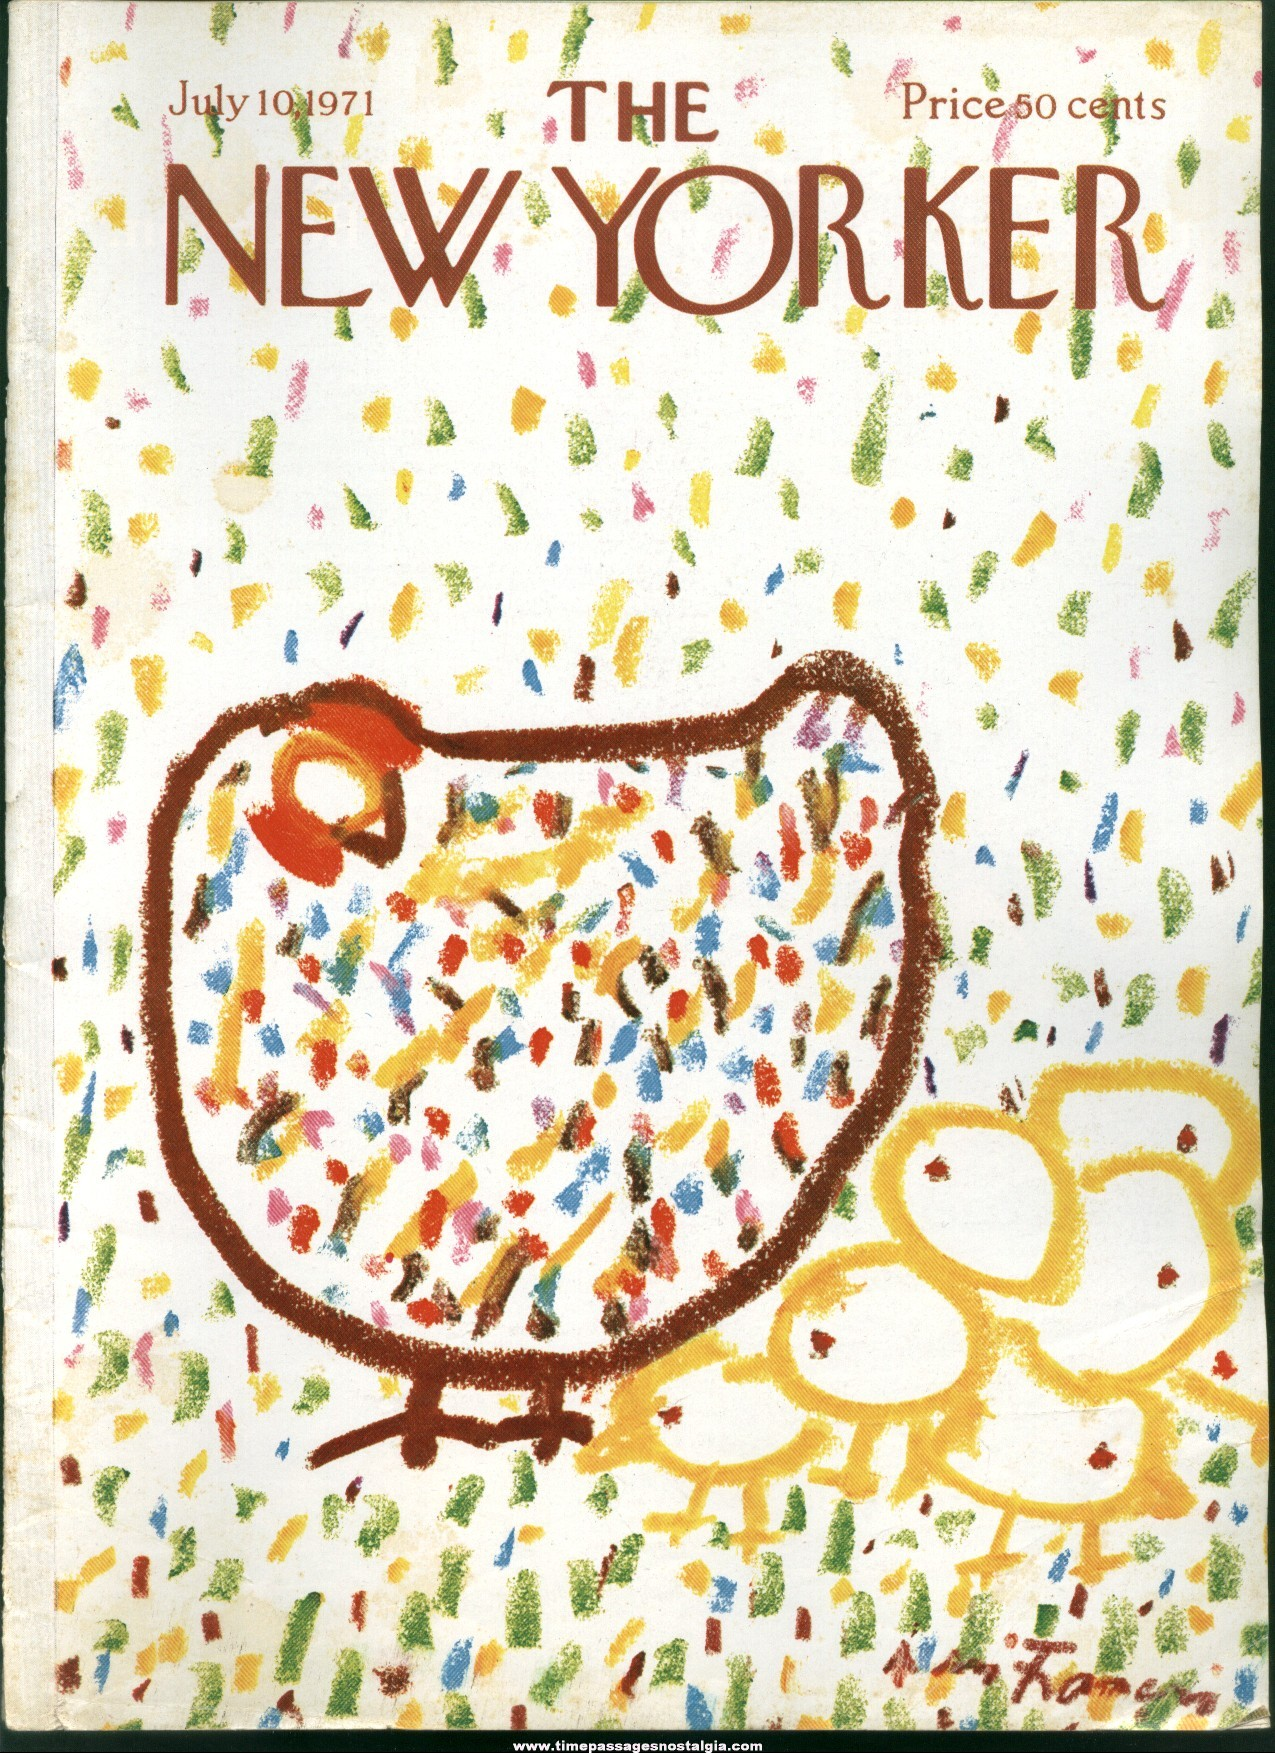 New Yorker Magazine - July 10, 1971 - Cover by Andre Francois